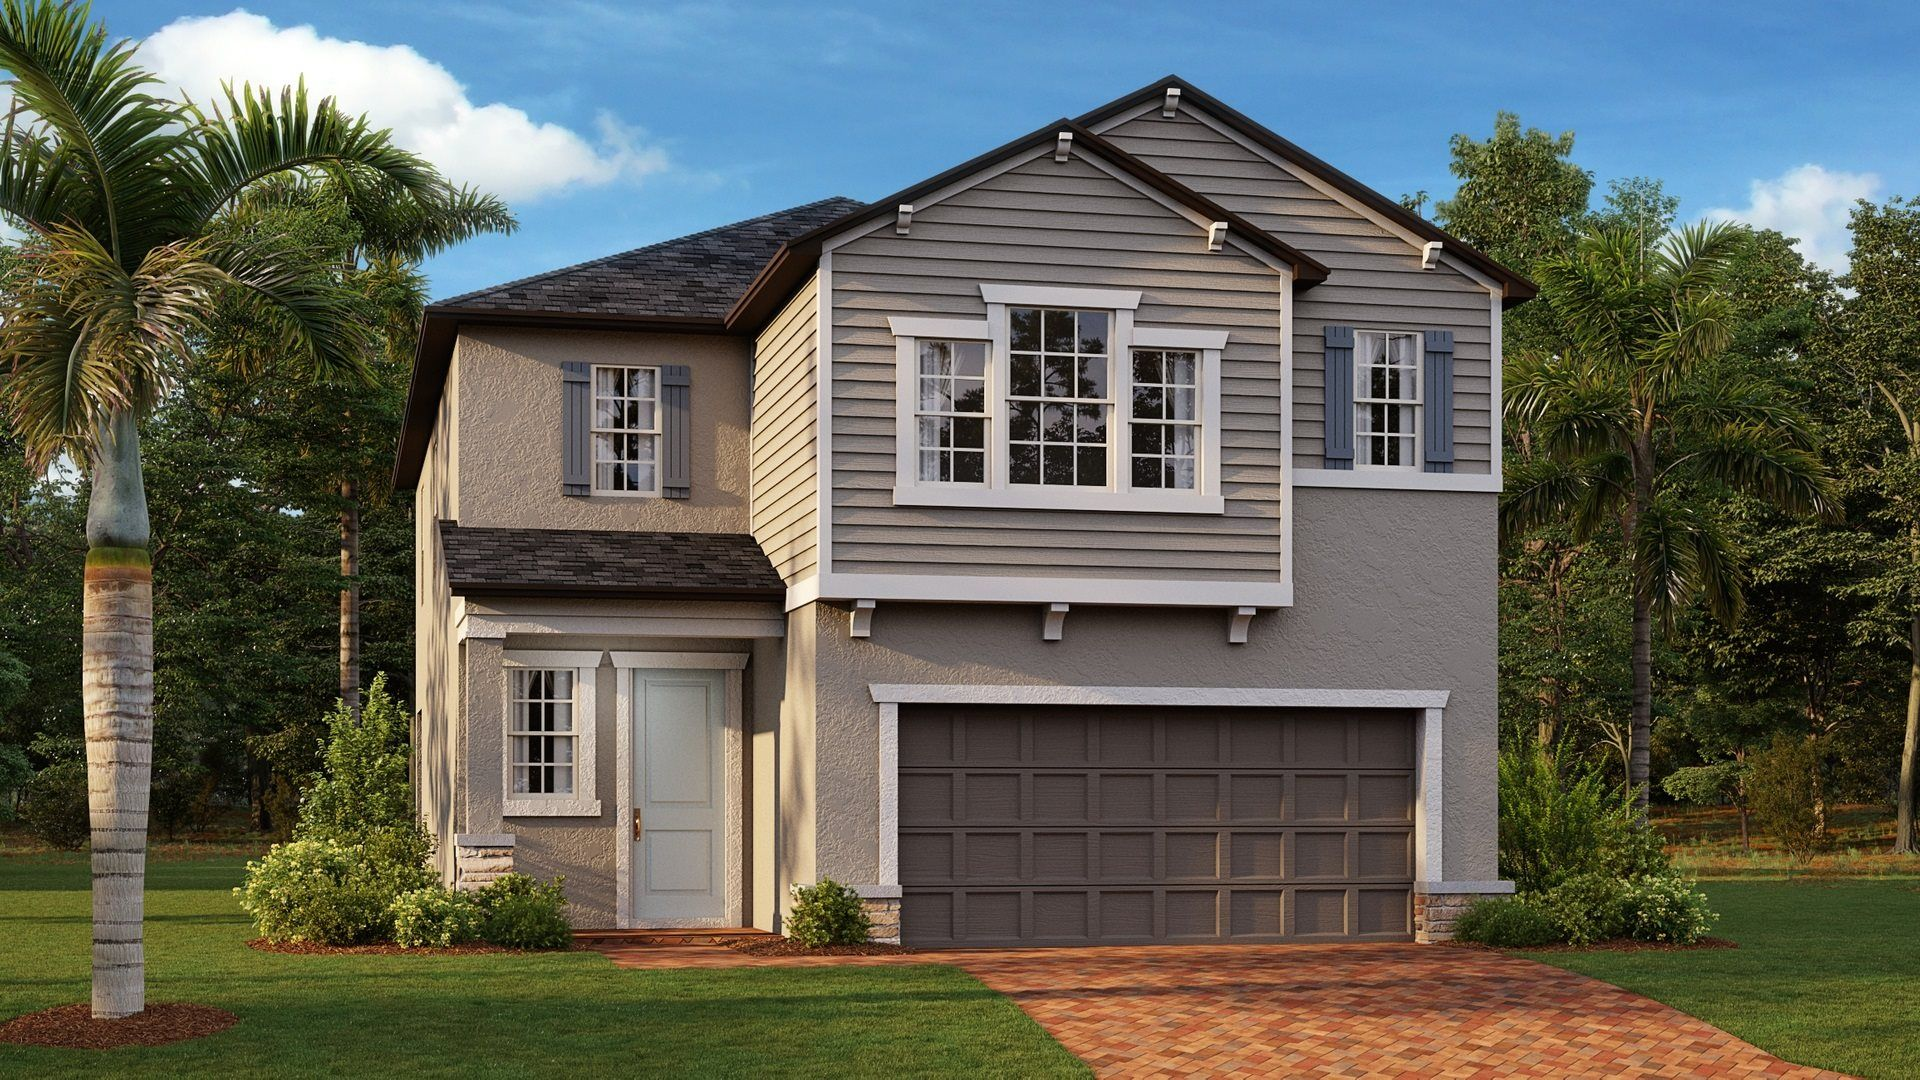 'Connerton - Sagewood Manors' by Lennar - Central Florida in Tampa-St. Petersburg